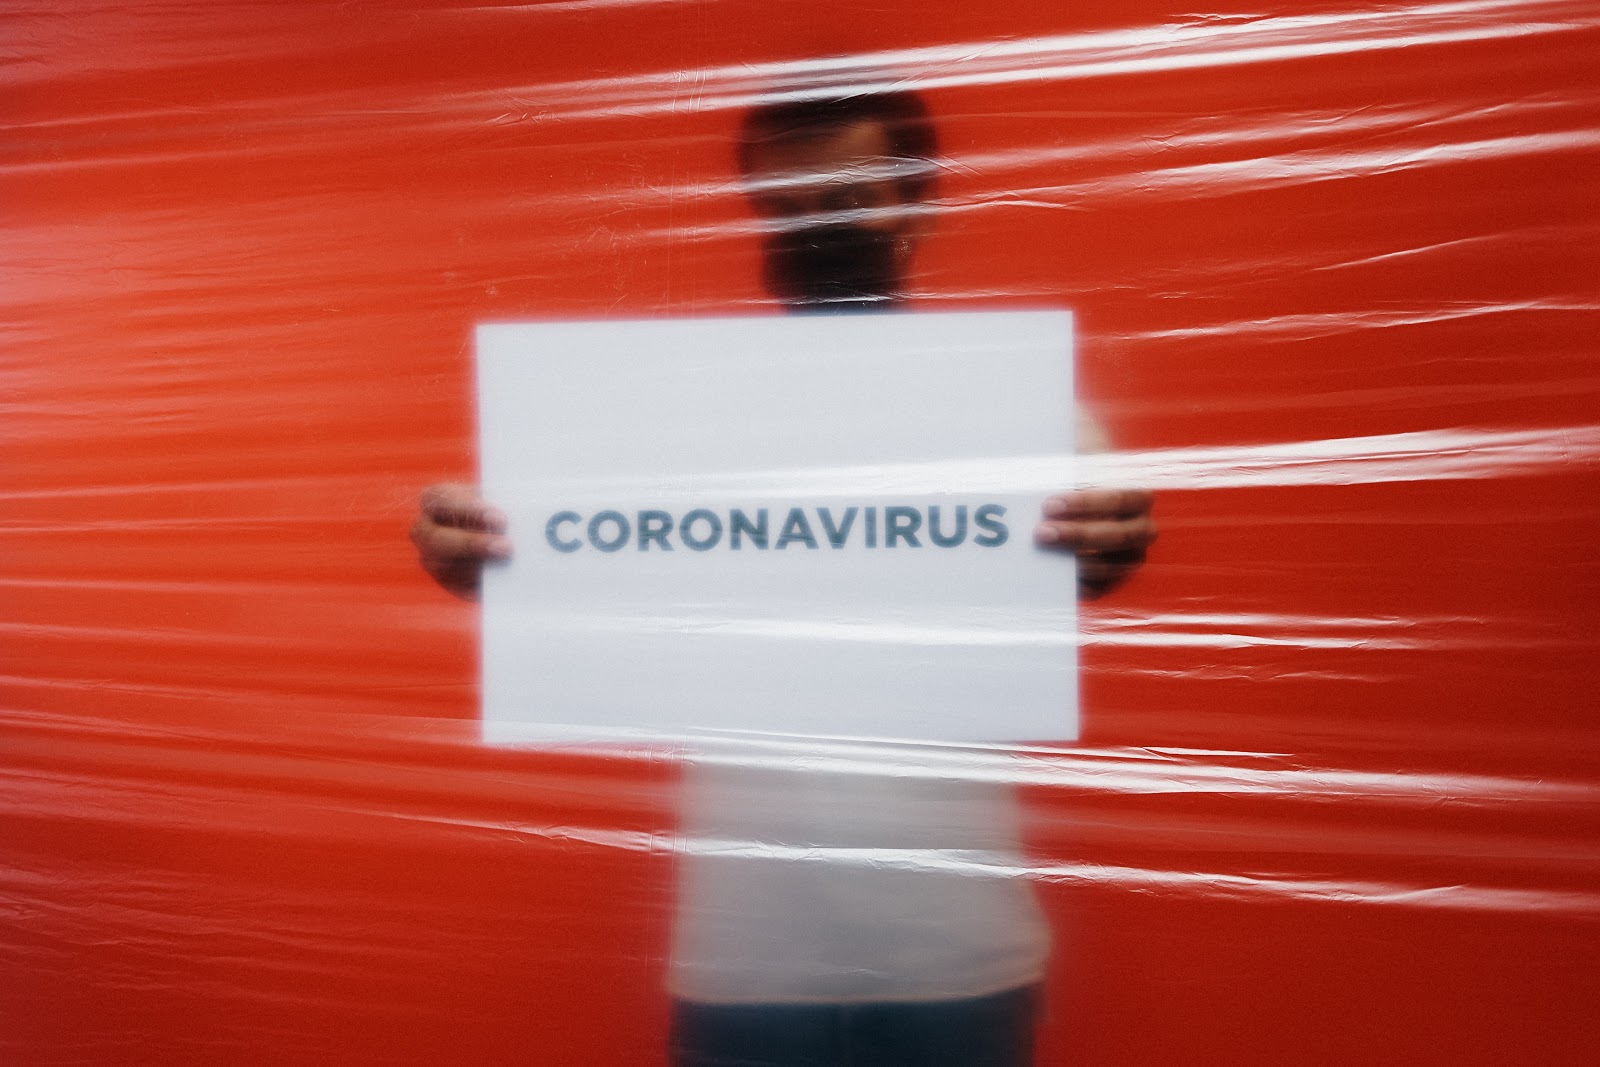 An anxious person showing Coronavirus message on a board signifying importance of how to cope with anxiety